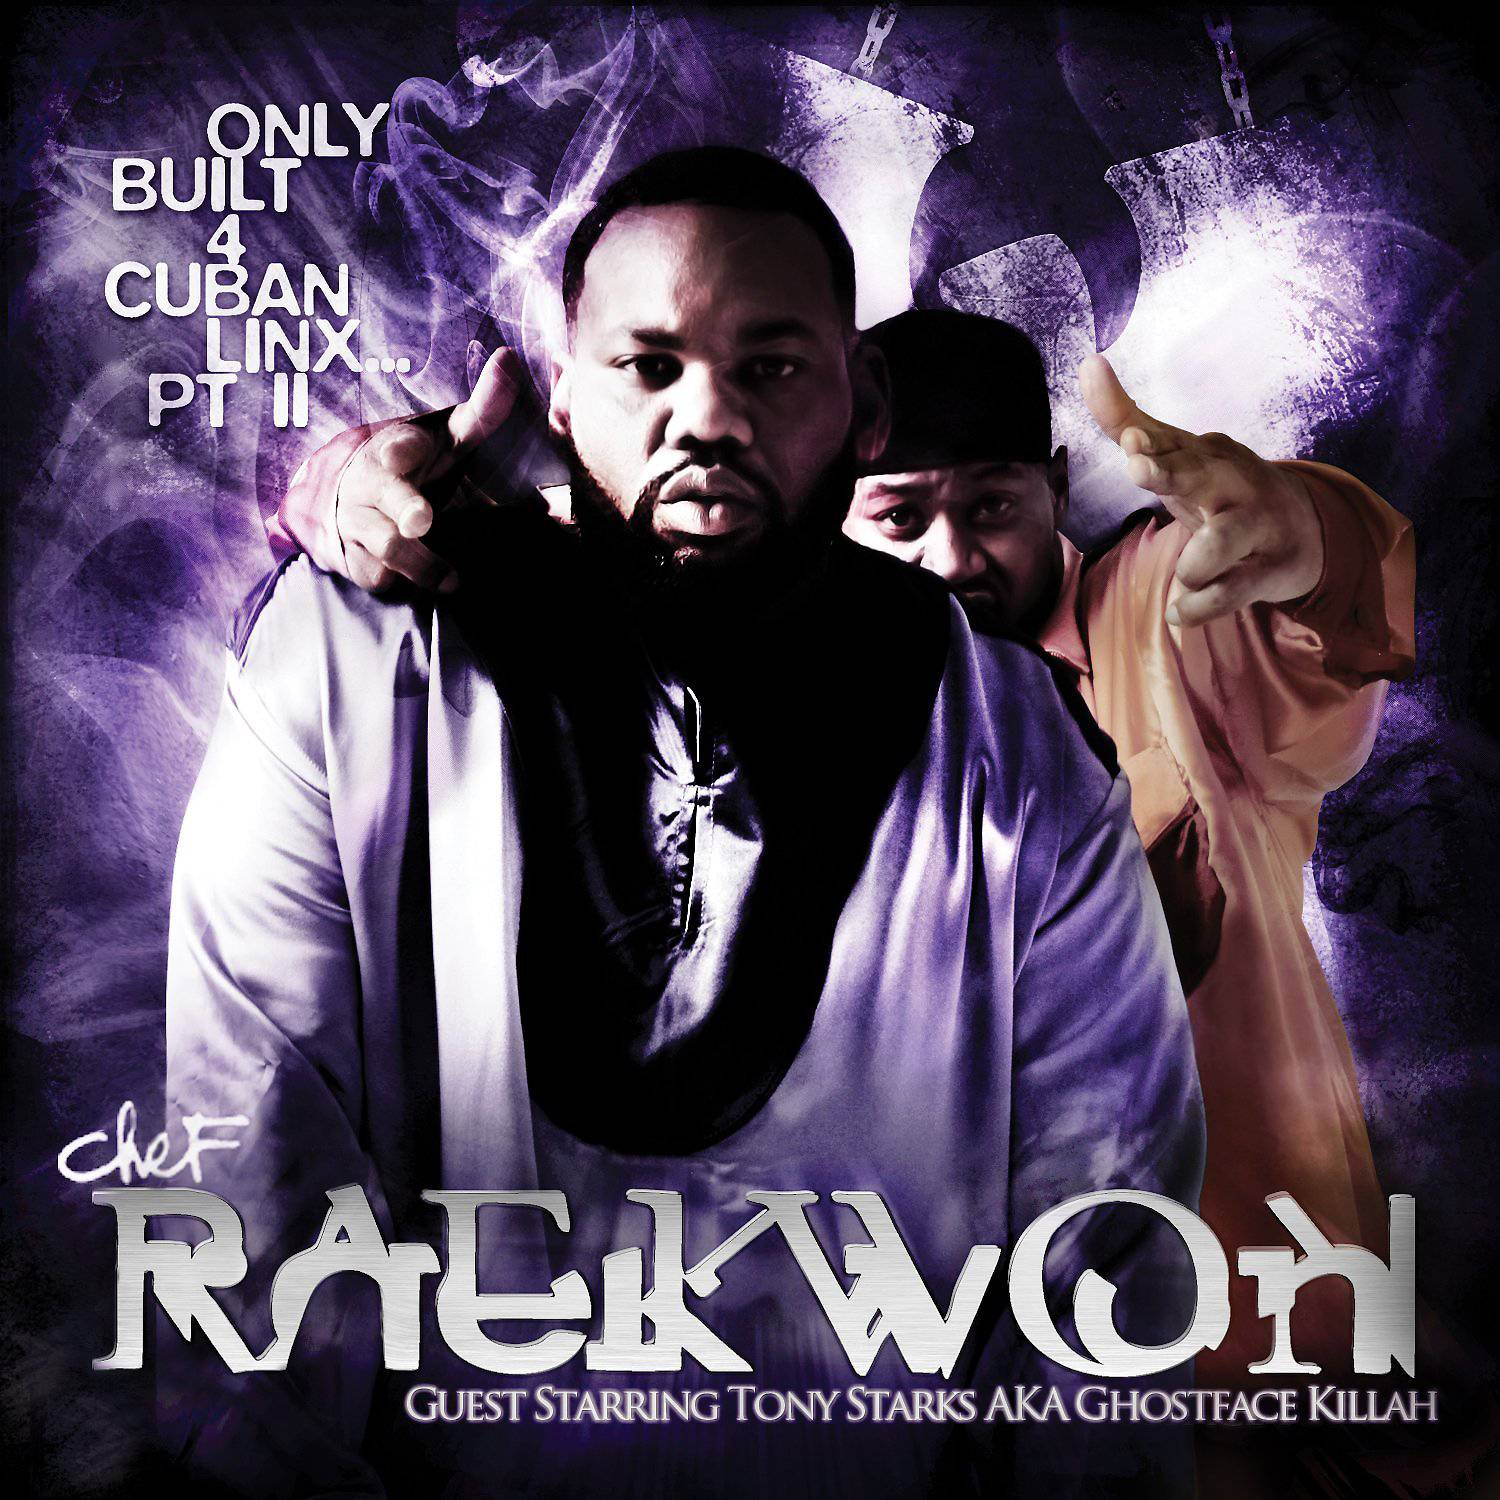 """8. Raekwon ? Only Built 4 Cuban Linx... Pt. II (2009) - It's a miracle that Raekwon was able to get such a murderer's row of producers (Pete Rock, Dr. Dre, Marley Marl, RZA, Erick Sermon, and that's just for starters) to stick to Only Built 4 Cuban Linx... Pt. II's dark and riveting energy. The revitalized emcee even conjures up the spirit of late studio deity J Dilla on the soaring """"House of Flying Daggers"""" and """"Ason Jones."""" Running buddy Ghostface and various other Wu players break bread as well. Rarely do sequels scratch the firepower of the original, but Rae pulls off the unimaginable with aplomb. Stellar stuff. (Photo: EMI Records)"""